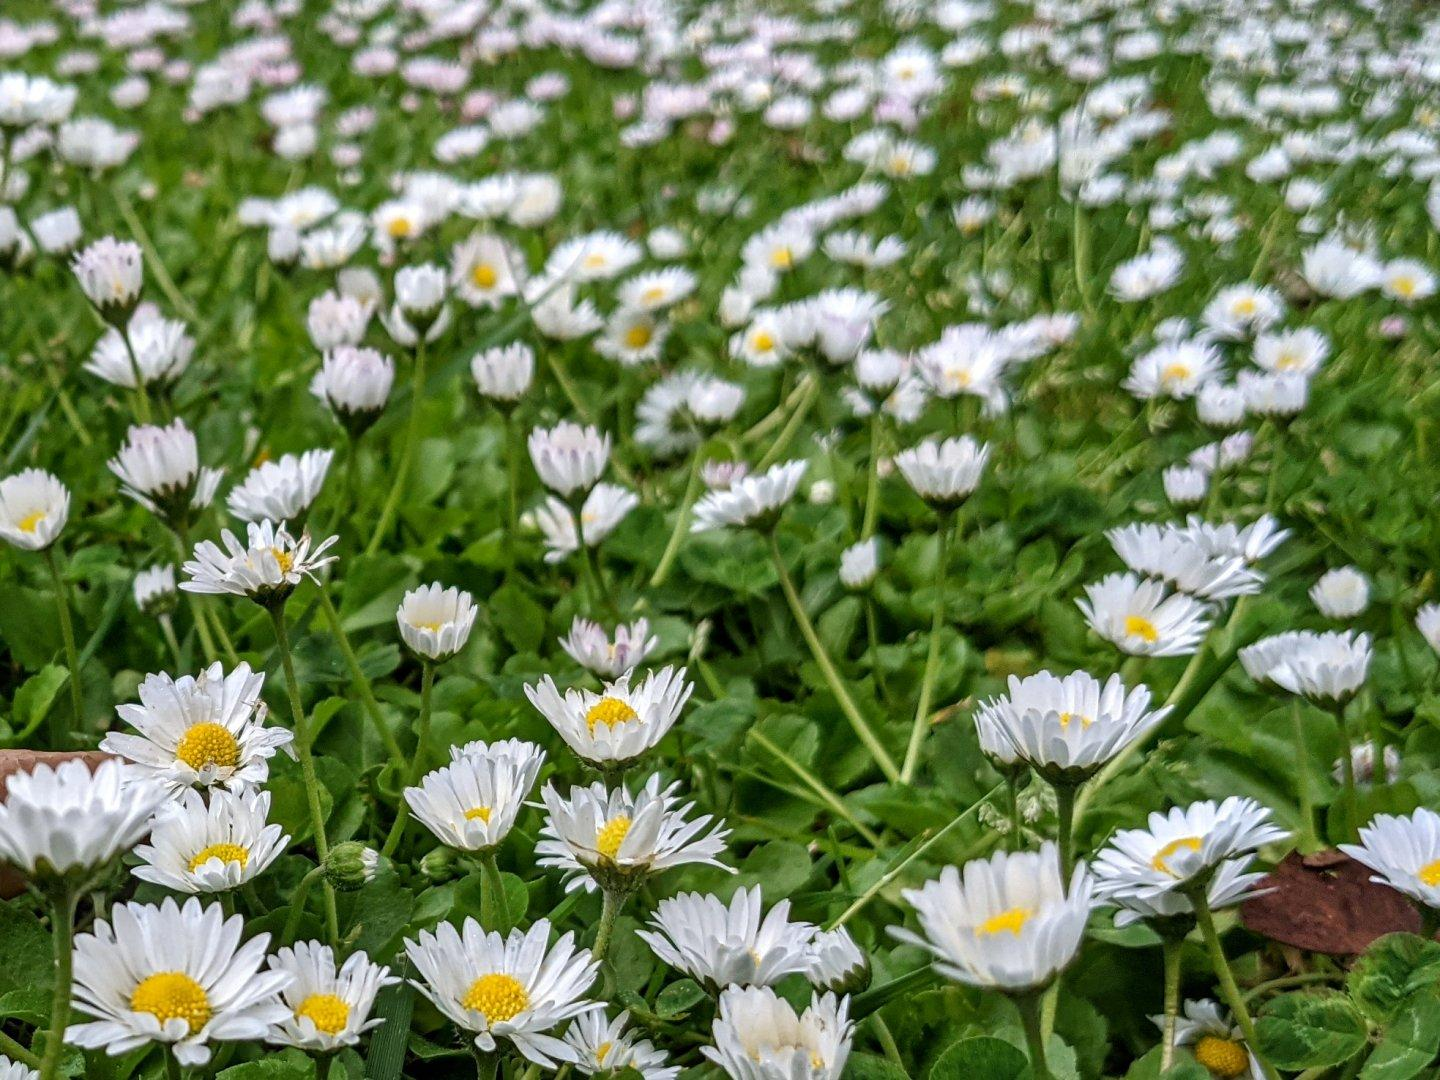 Earth, daisies.